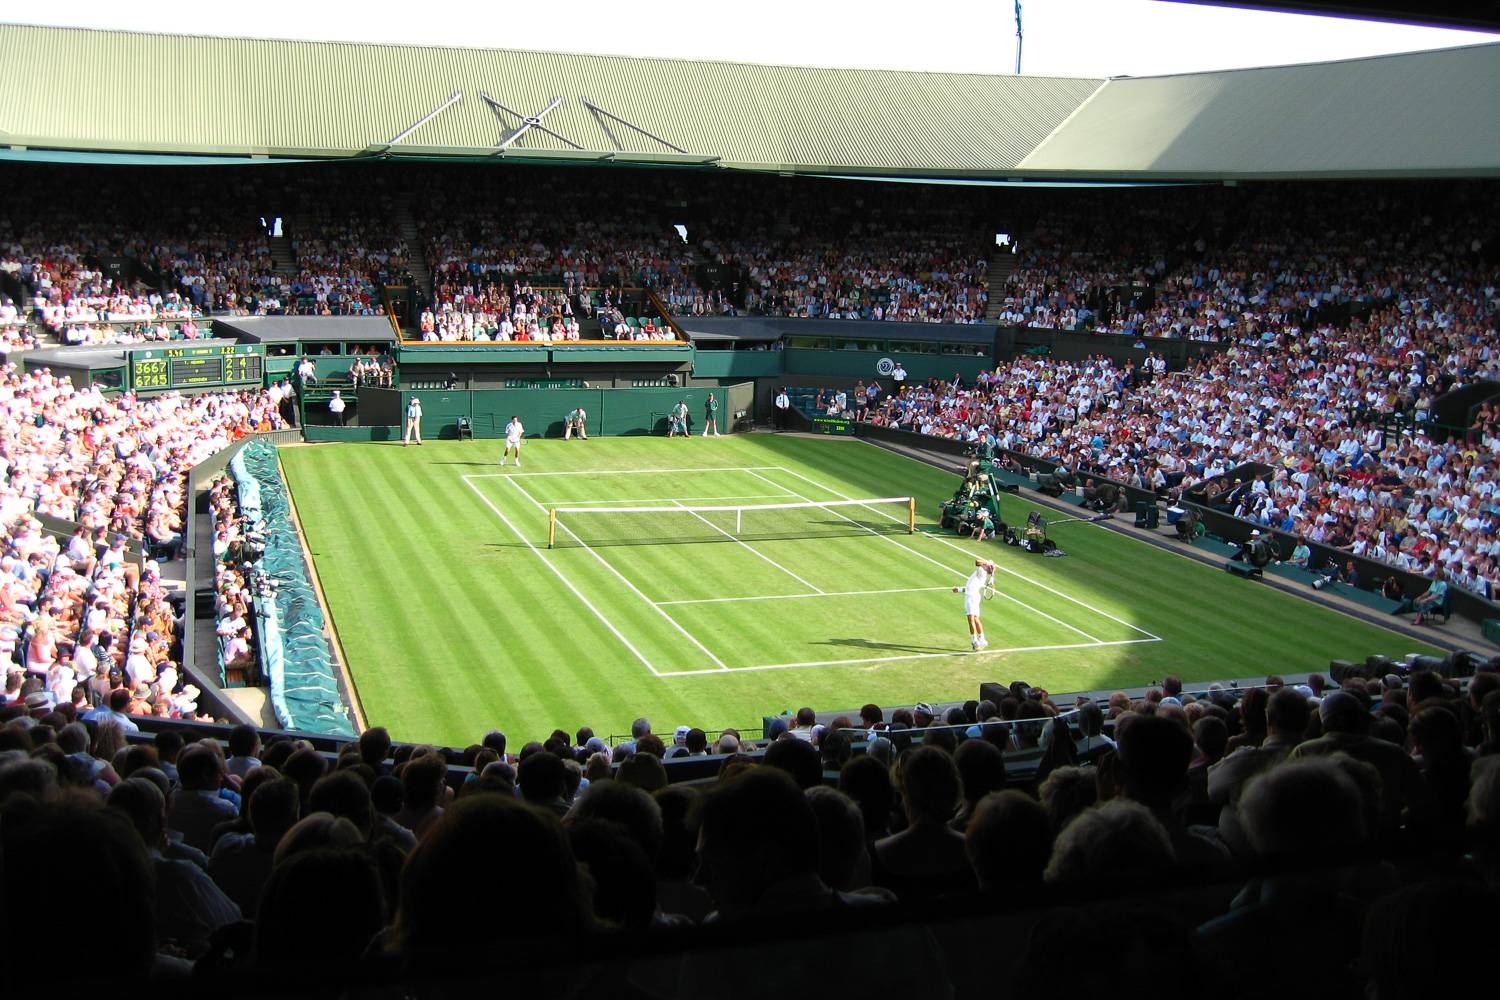 Image of a match being played at Wimbledon's Centre Court.